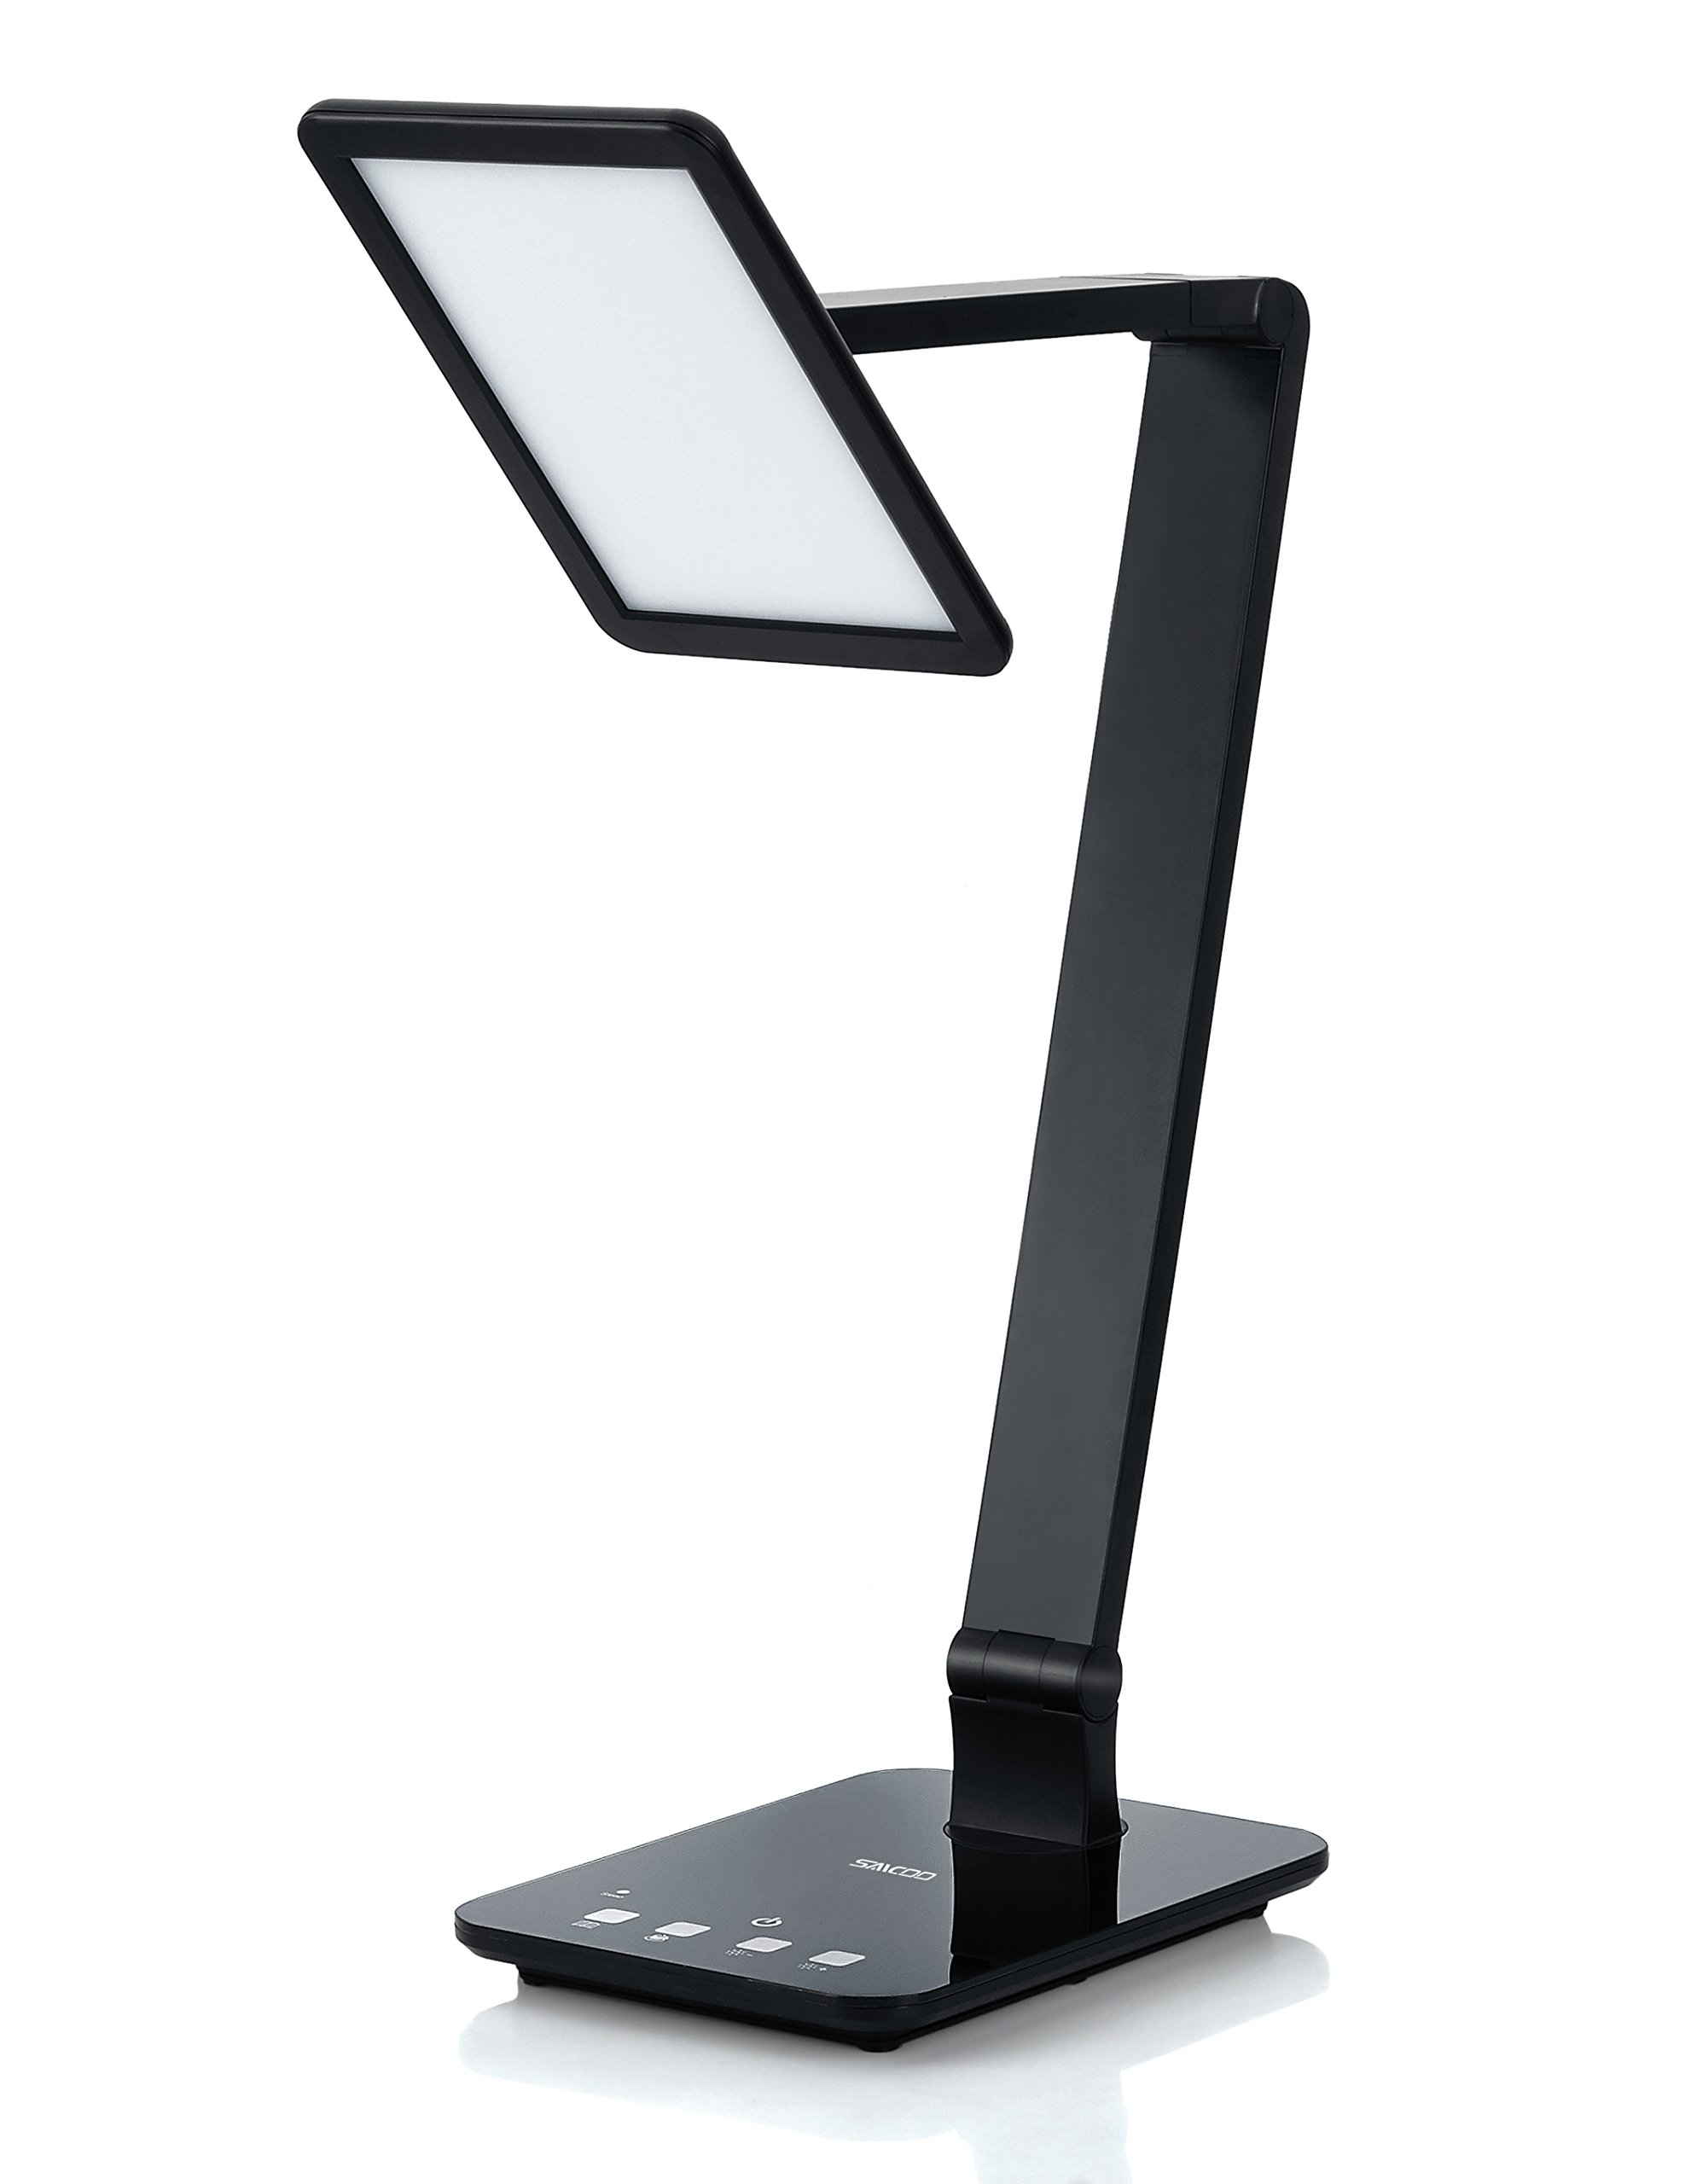 Saicoo Led Desktop Lamp with Large Led Panel, Seamless Dimming Control of Brightness and Color Temperature, an USB Charging Port, Black by saicoo